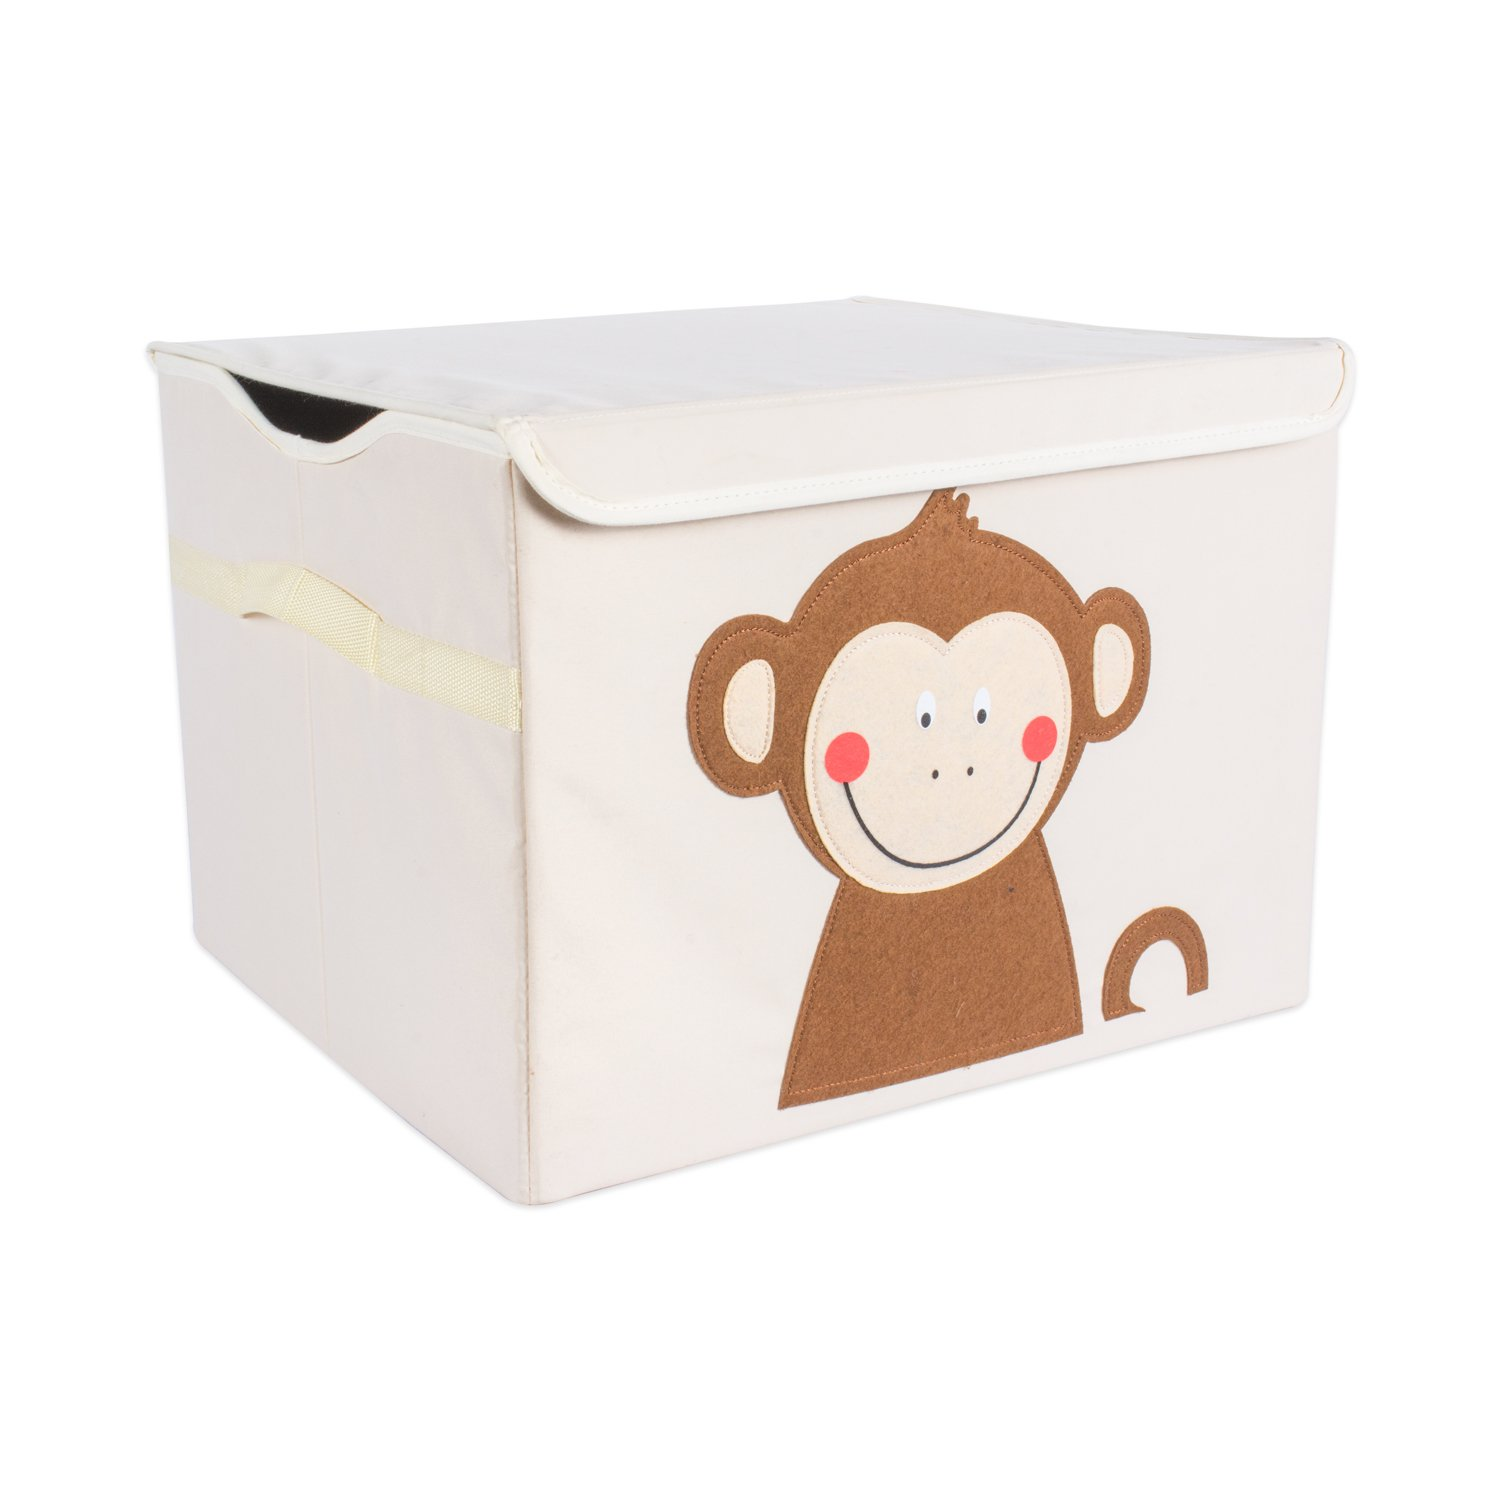 DII Nursery or Playroom Toy Chest with Flip Lid, Use for Storing Anything from Fun Toys, Favorite Blankets, Adventurous Books, More (17x15x12) - Monkey